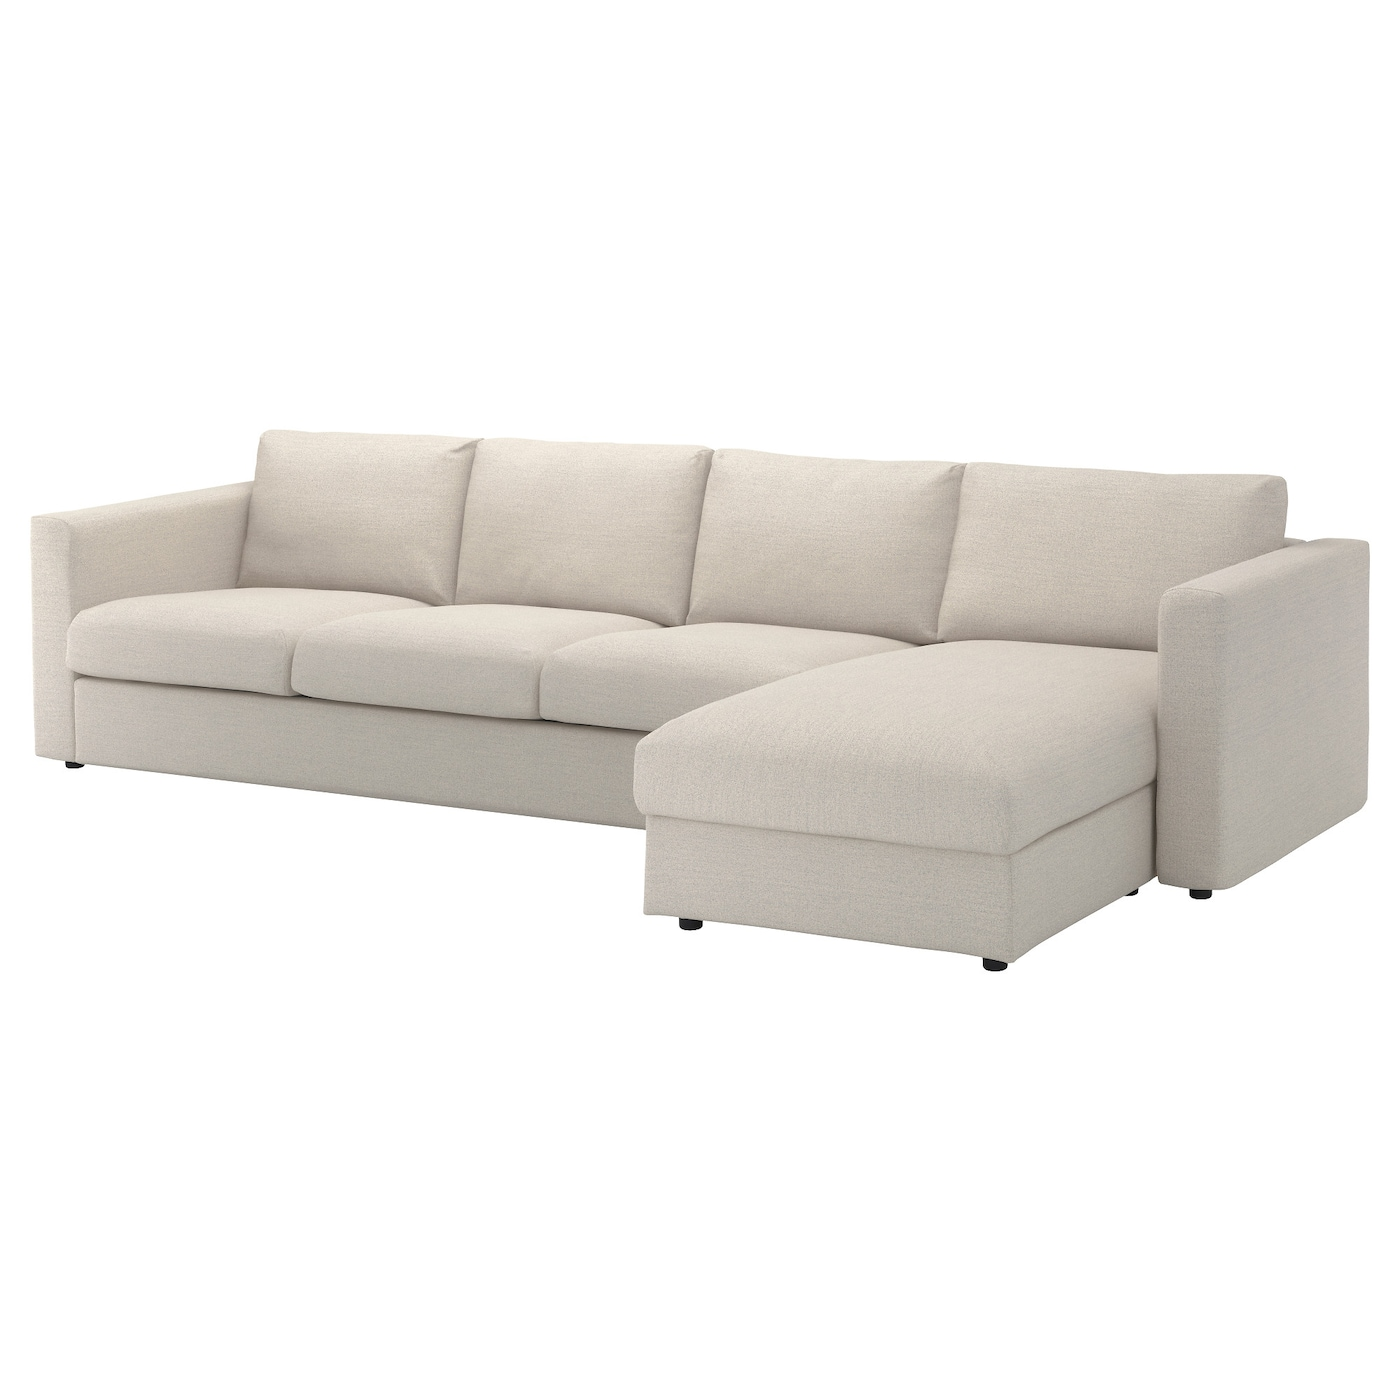 4 Seat With Chaise Gunnared Beige